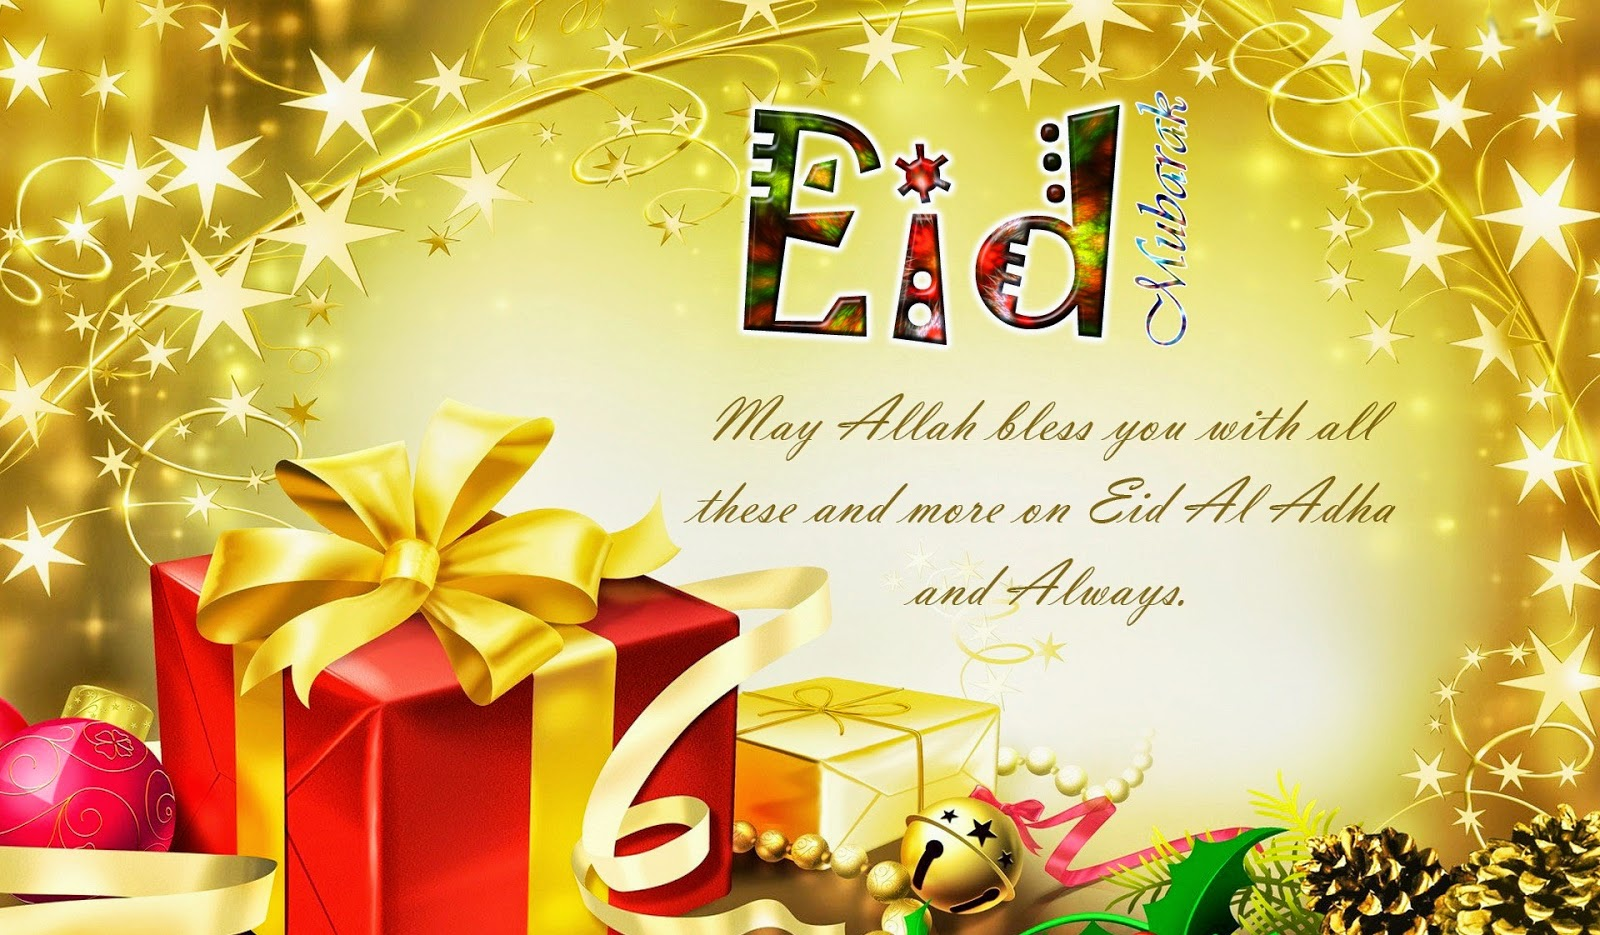 Eid Mubarak 2014 HD Wallpapers